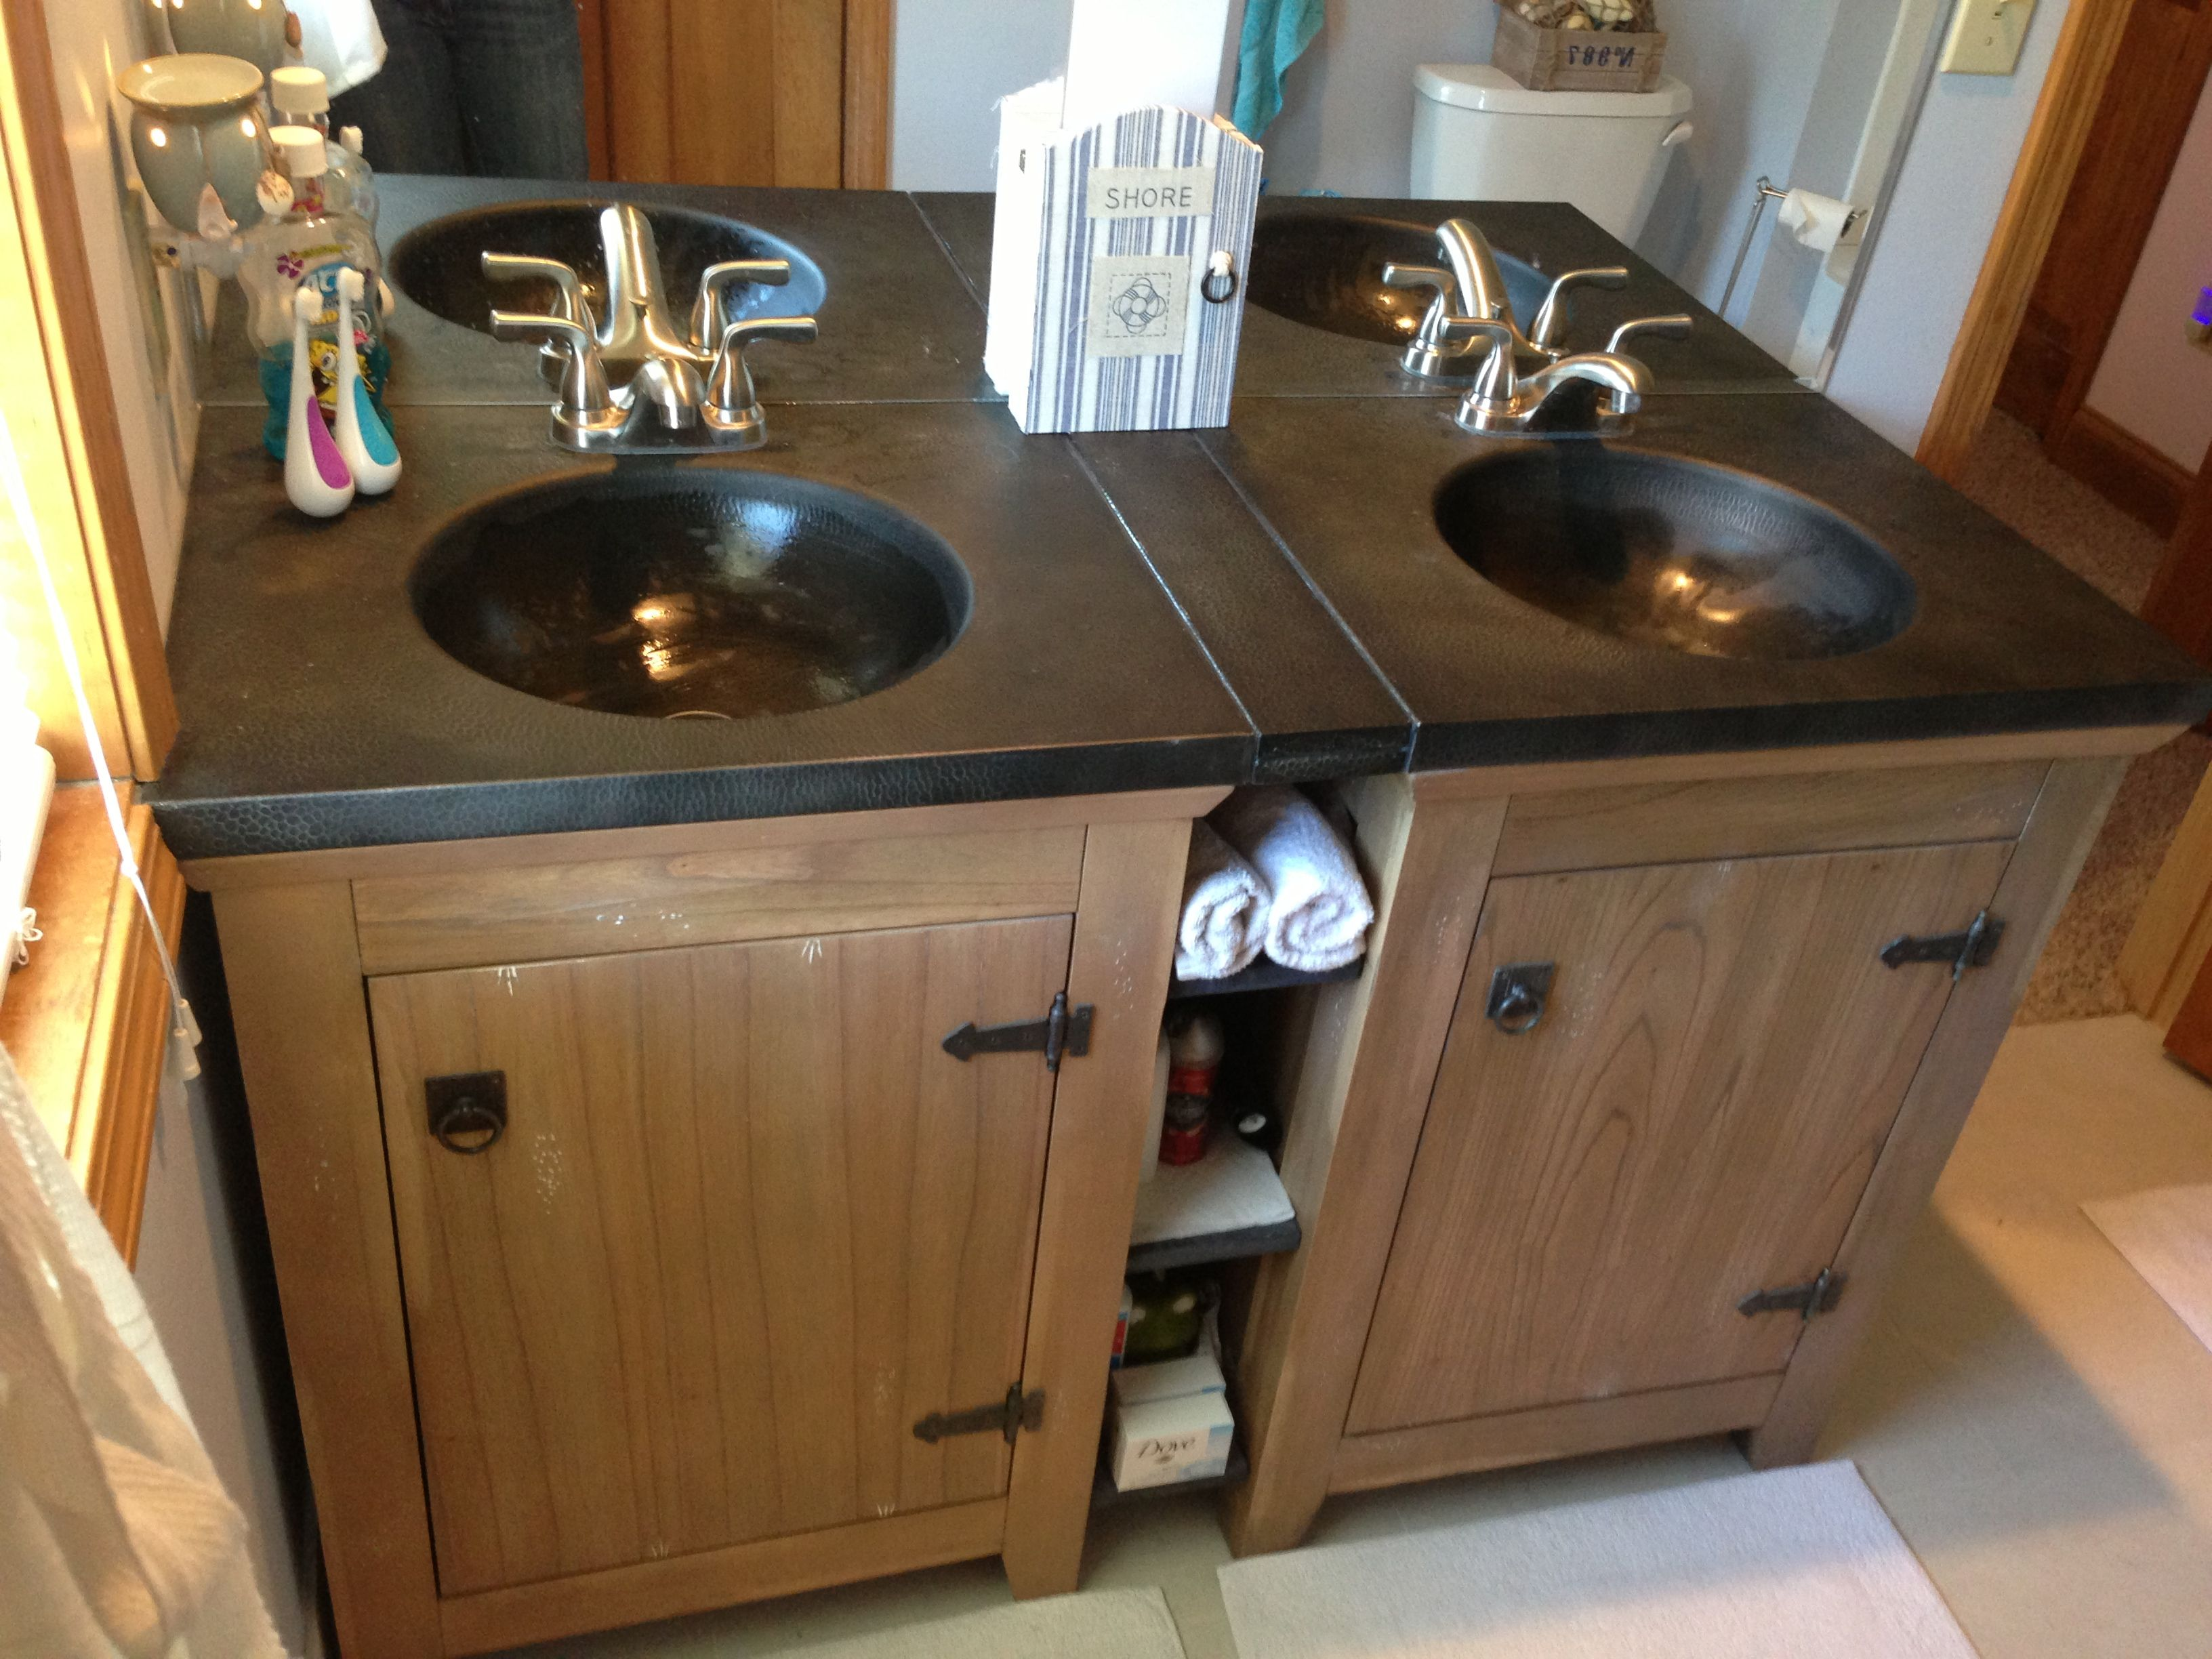 Kids Bath   When You Want A Double Vanity, But Donu0027t Want To Pay The Price For  One Piece $$$   Put Two Single Vanities Together With A Shelf In Between For  ...